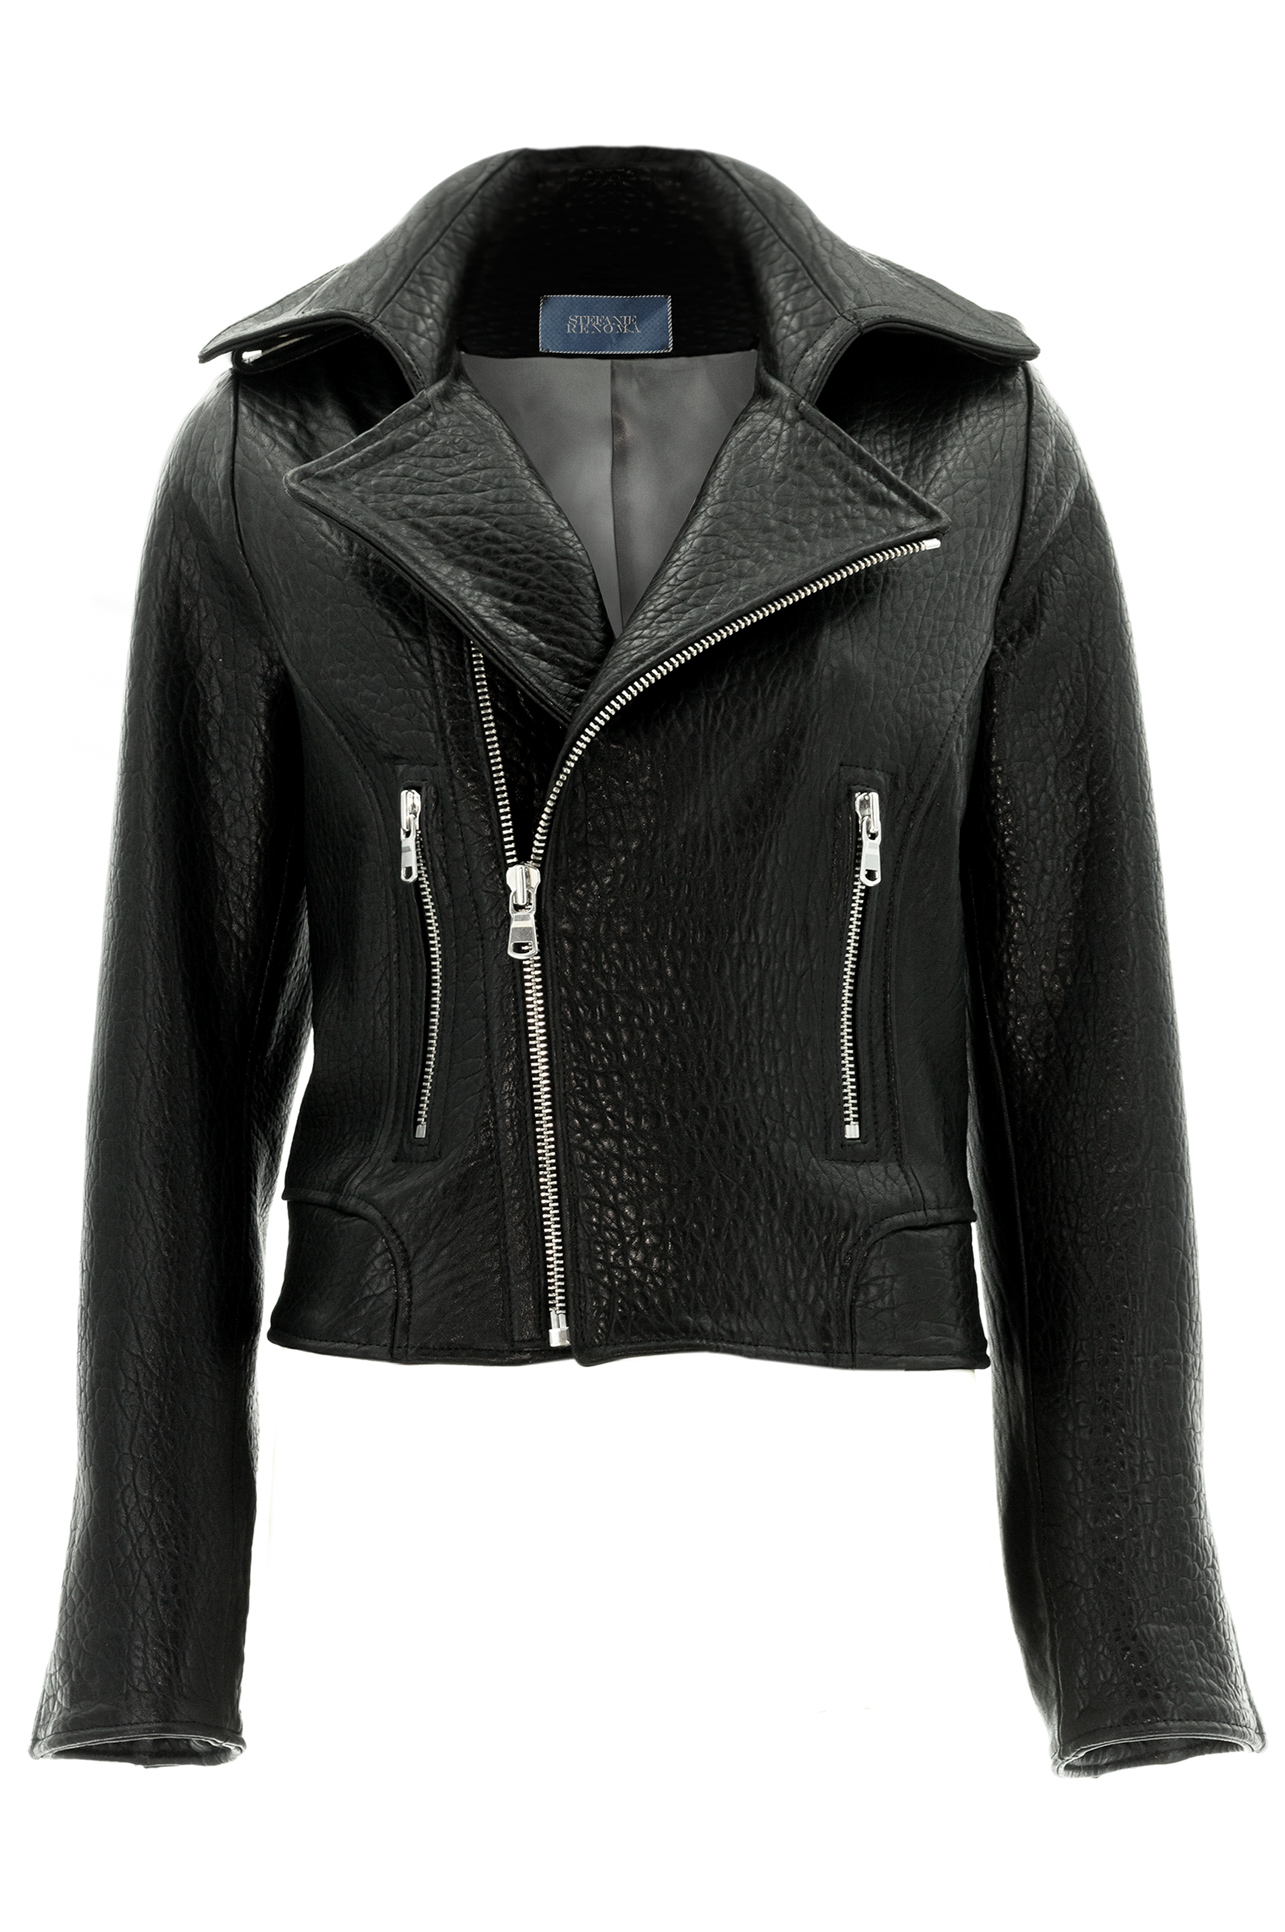 biker jacket perfecto jacket in black leather woman stefanie renoma. Black Bedroom Furniture Sets. Home Design Ideas